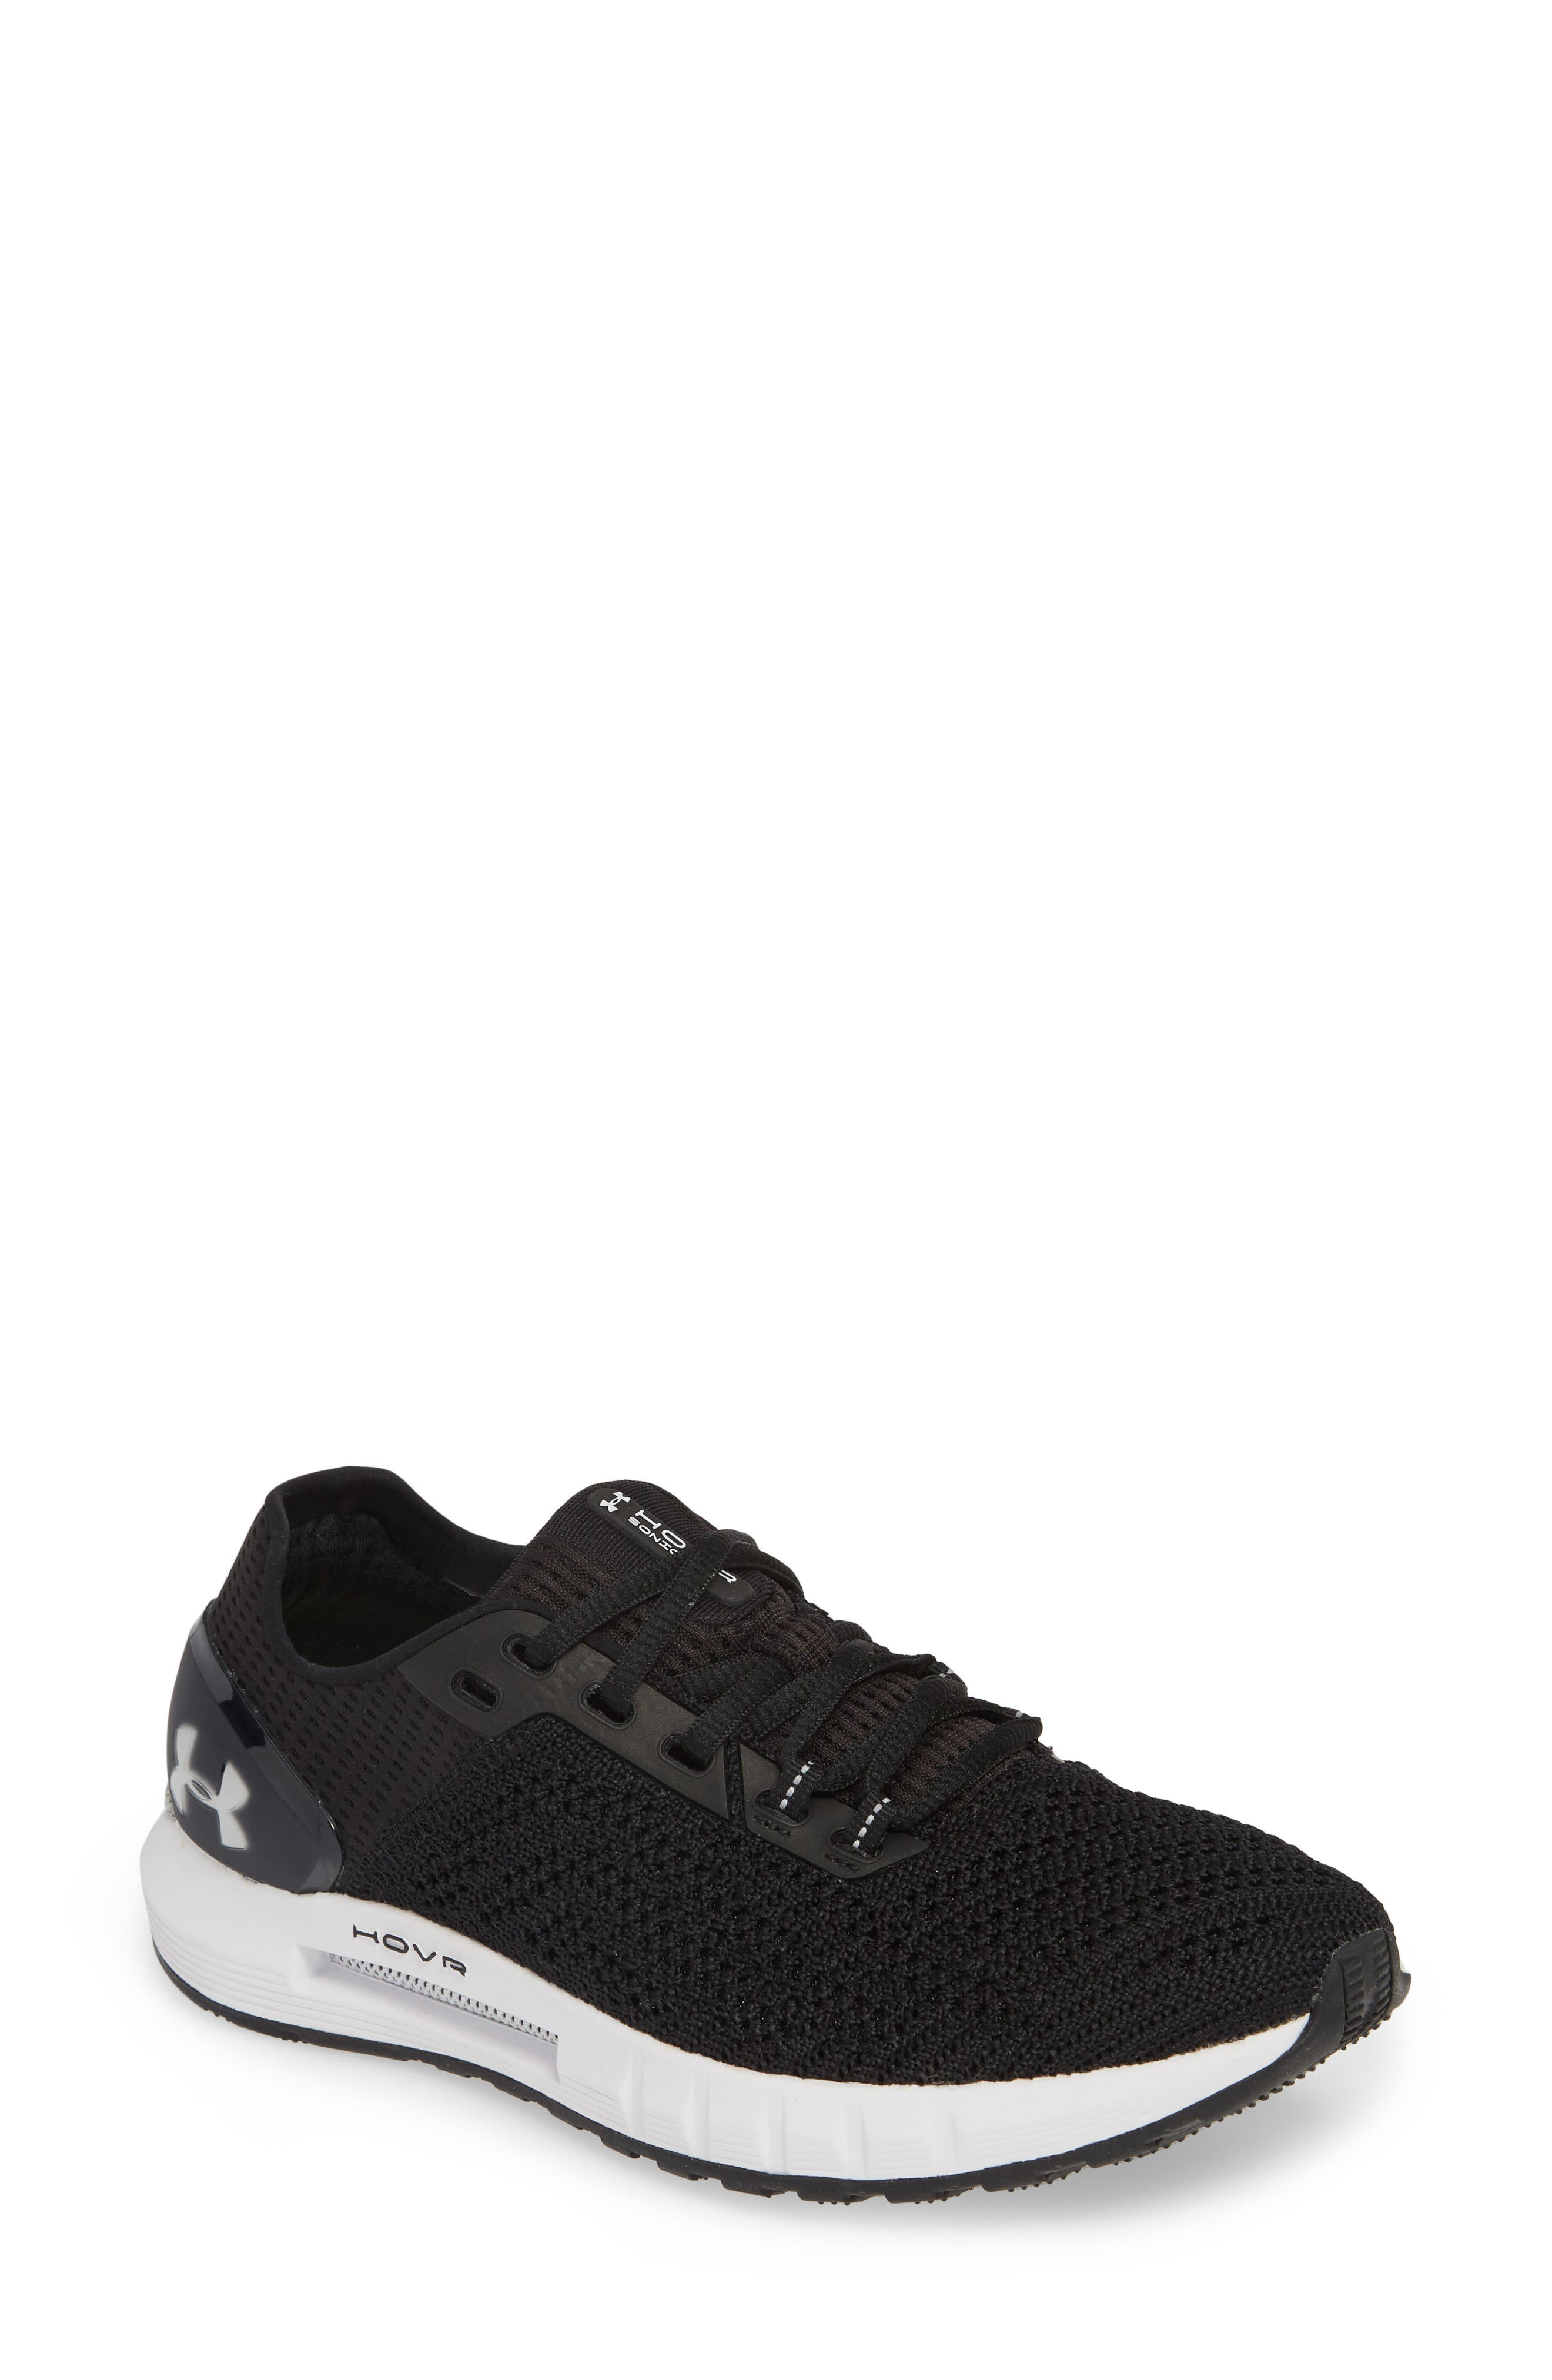 HOVR<sup>™</sup> Sonic 2 Connected Running Shoe, Main, color, BLACK/ WHITE/ WHITE